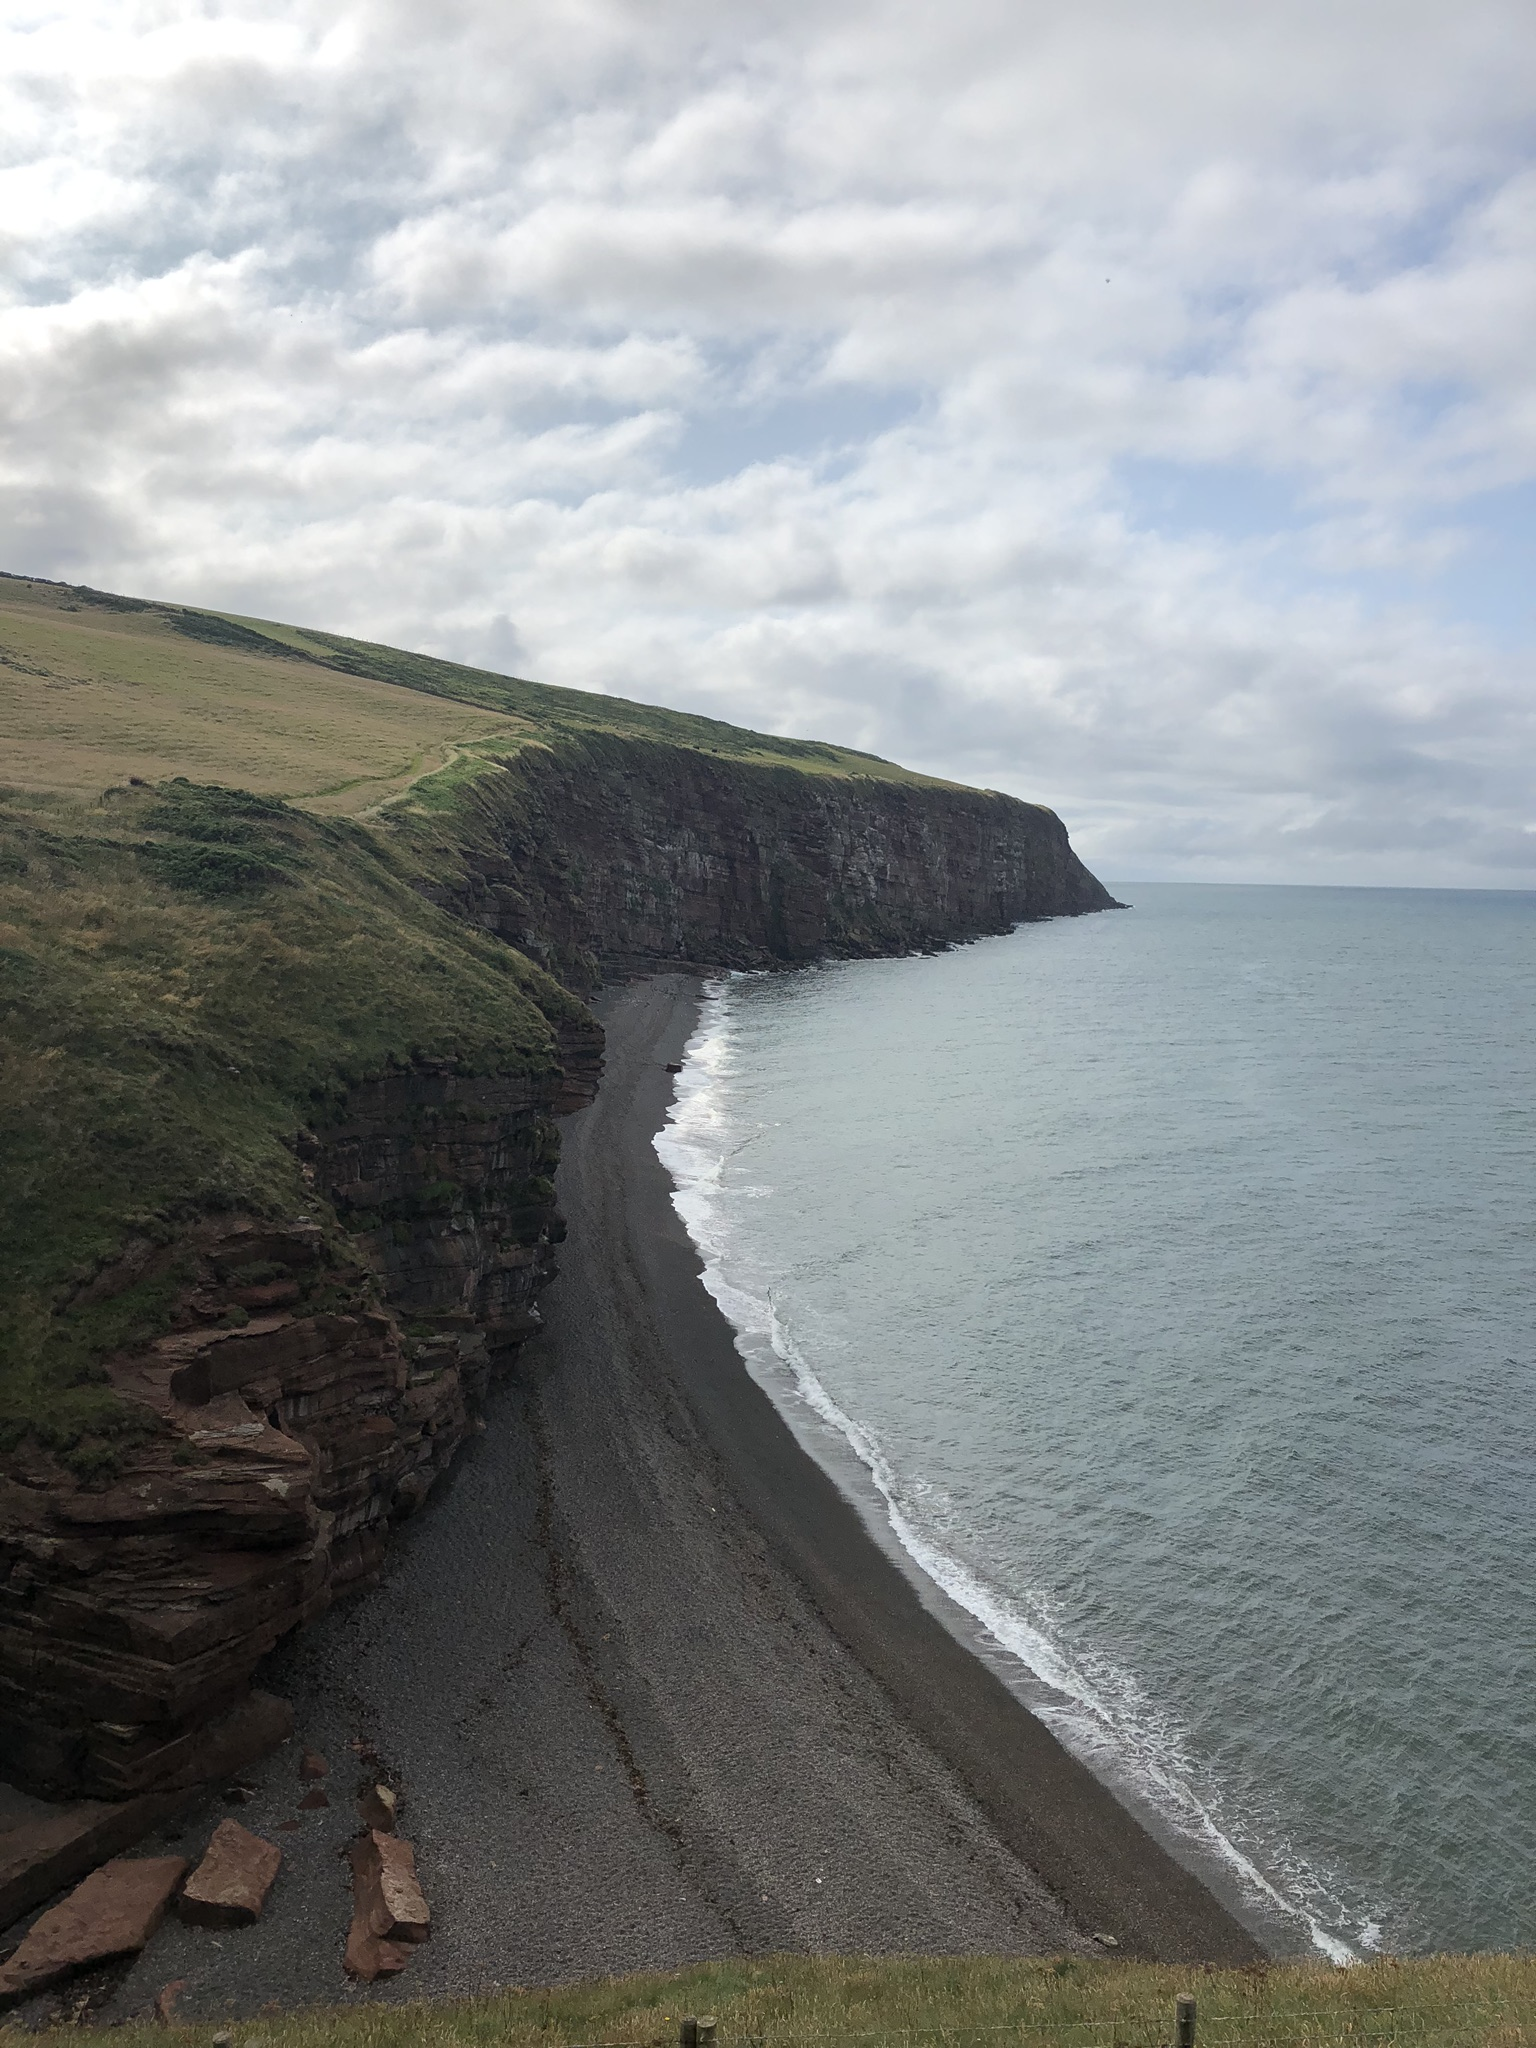 Sandstone cliffs along the Irish Sea guide you through the first leg of the walk before heading inland to the Lakes District National Park.